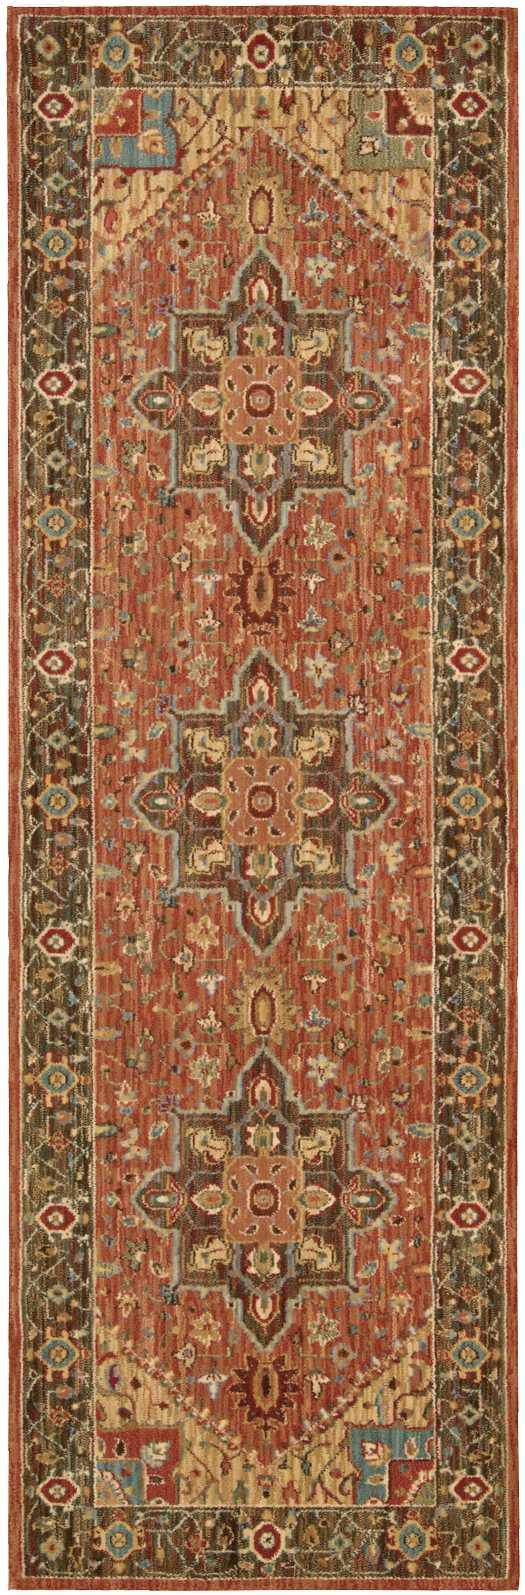 Nourison LIVING TREASURES LI01 RUST Area Rug